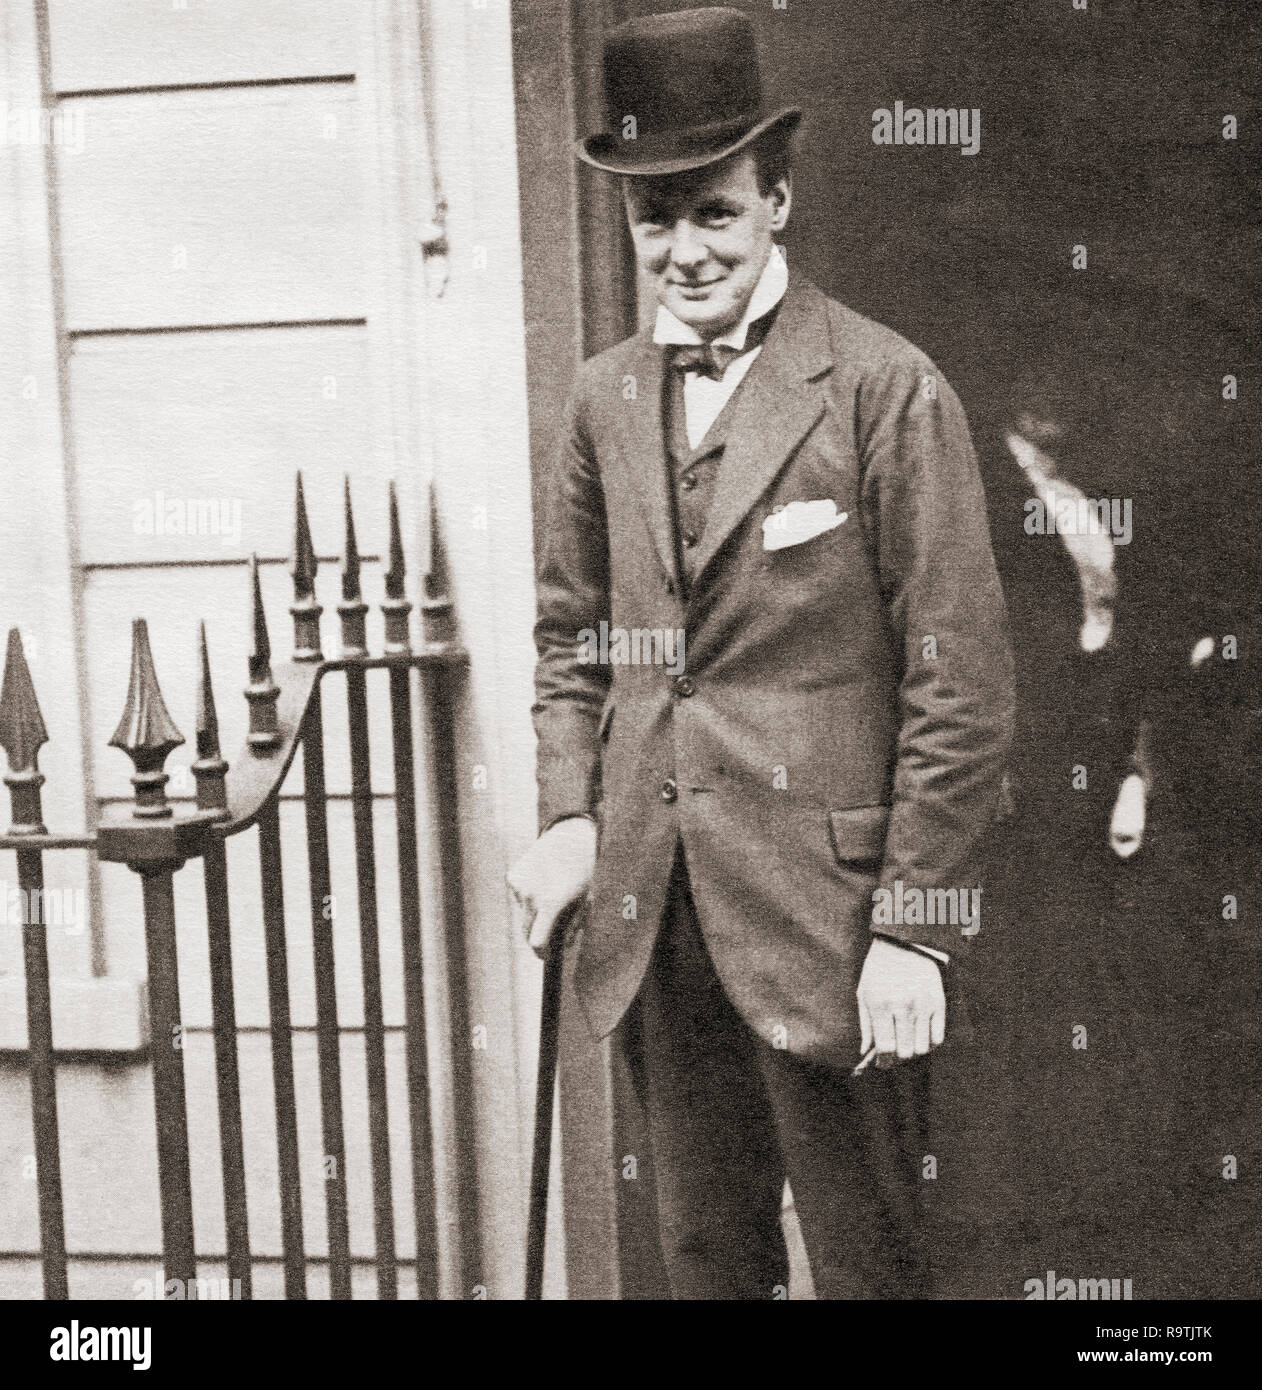 Winston Churchill seen here in 1908 at No.10 Downing Street, London, England.  Sir Winston Leonard Spencer-Churchill, 1874 –1965. British politician, statesman, army officer, and writer, who was Prime Minister of the United Kingdom from 1940 to 1945 and again from 1951 to 1955. - Stock Image